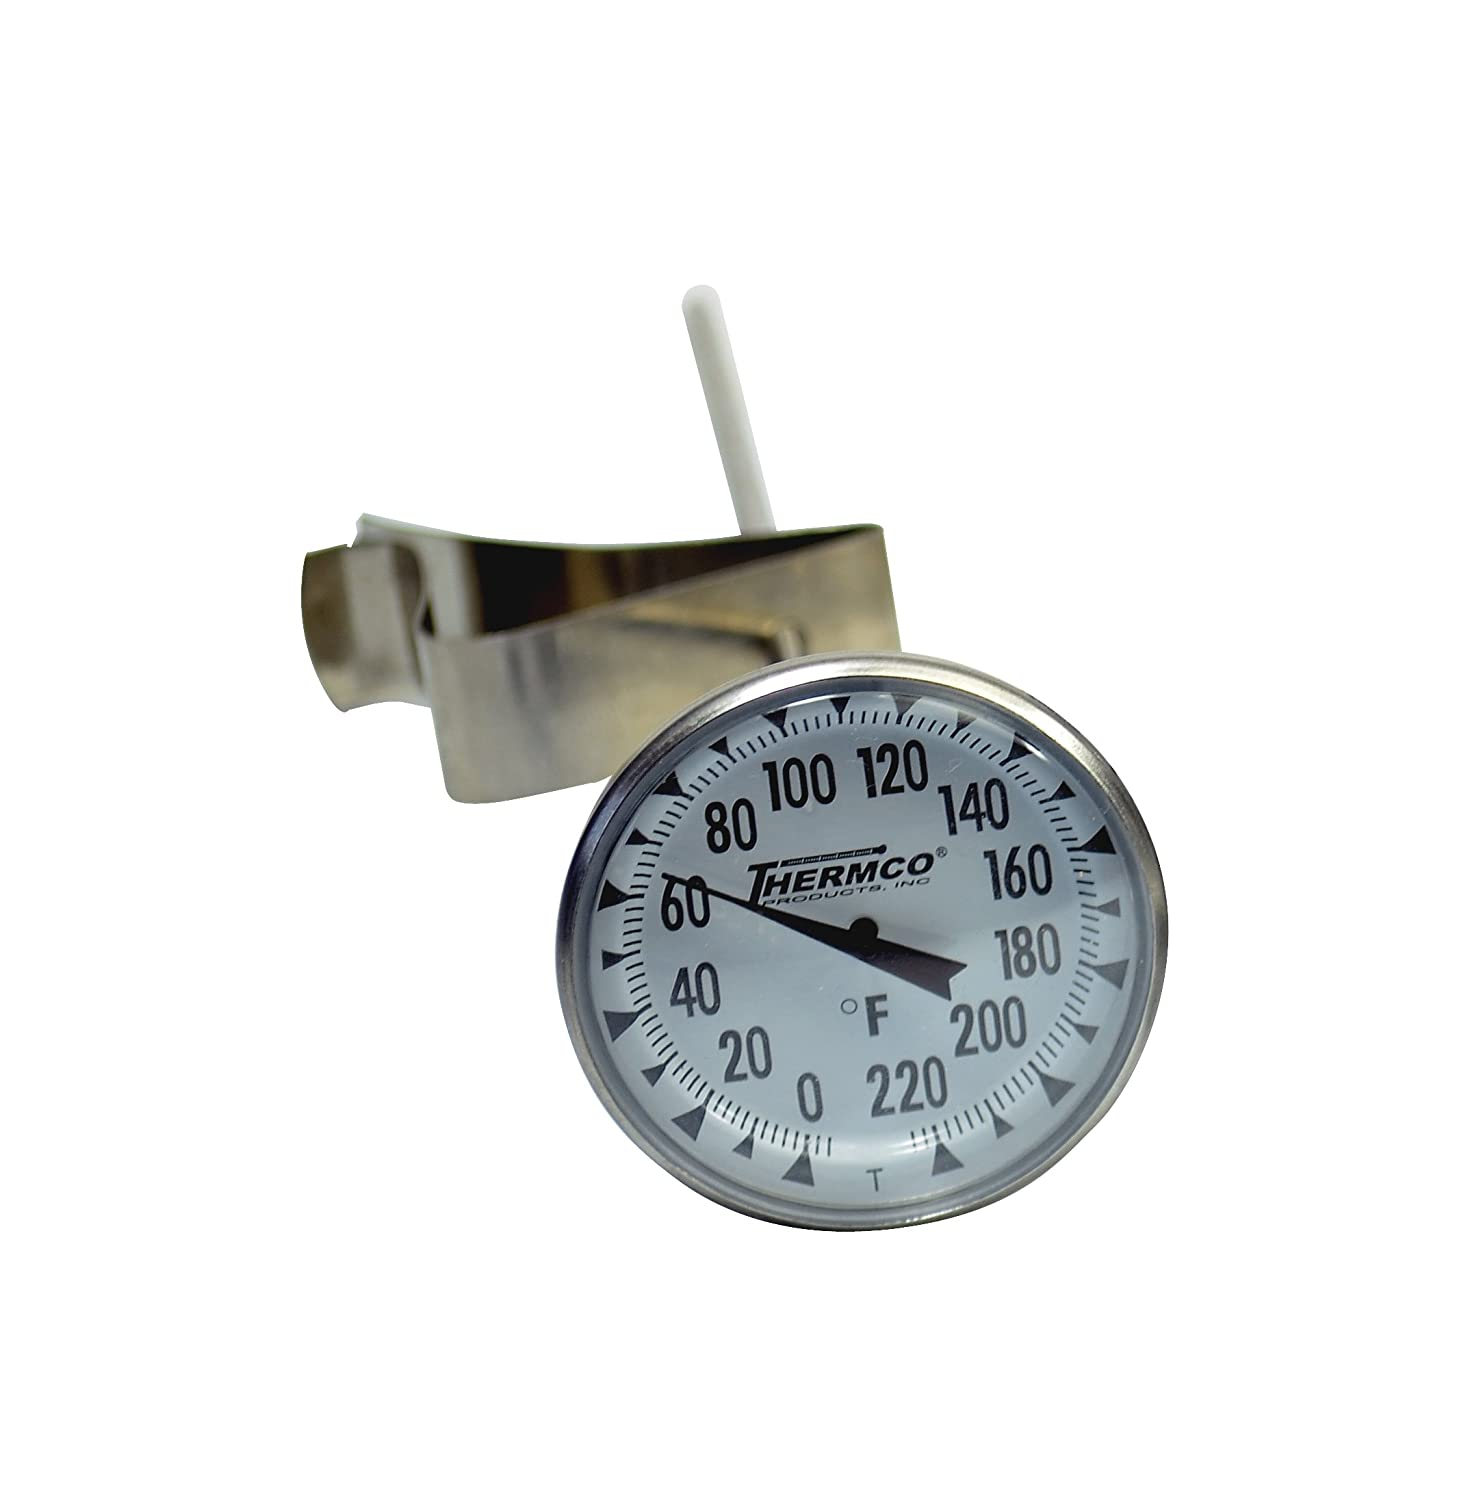 1-3//4 Dial Size 2 Immersion 1-3//4 Dial Size 8 Stem with No Cover 2 Immersion Thermco Products Inc. 8 Stem with No Cover Thermco ACC2GG220F Bi-Metal Dial Laboratory Thermometer 0 to 220/°F Range